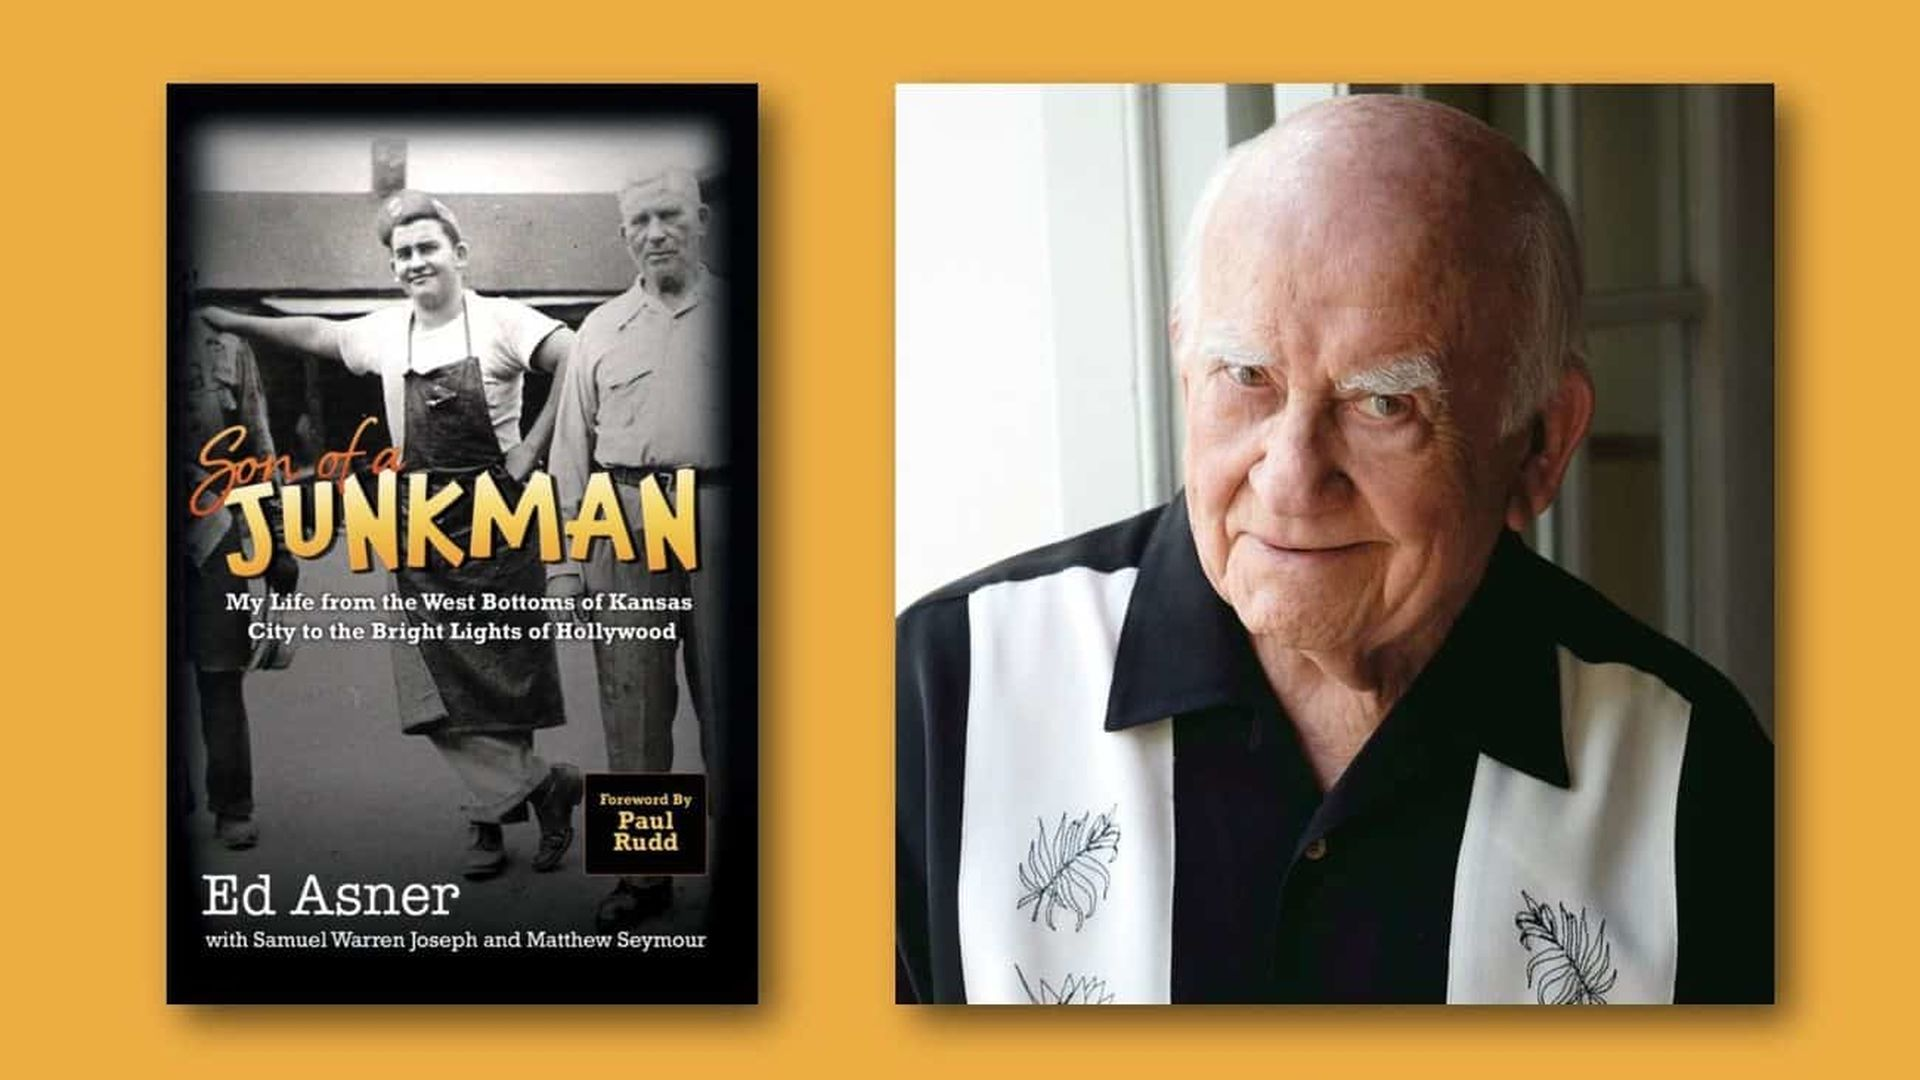 LIVE with ED ASNER